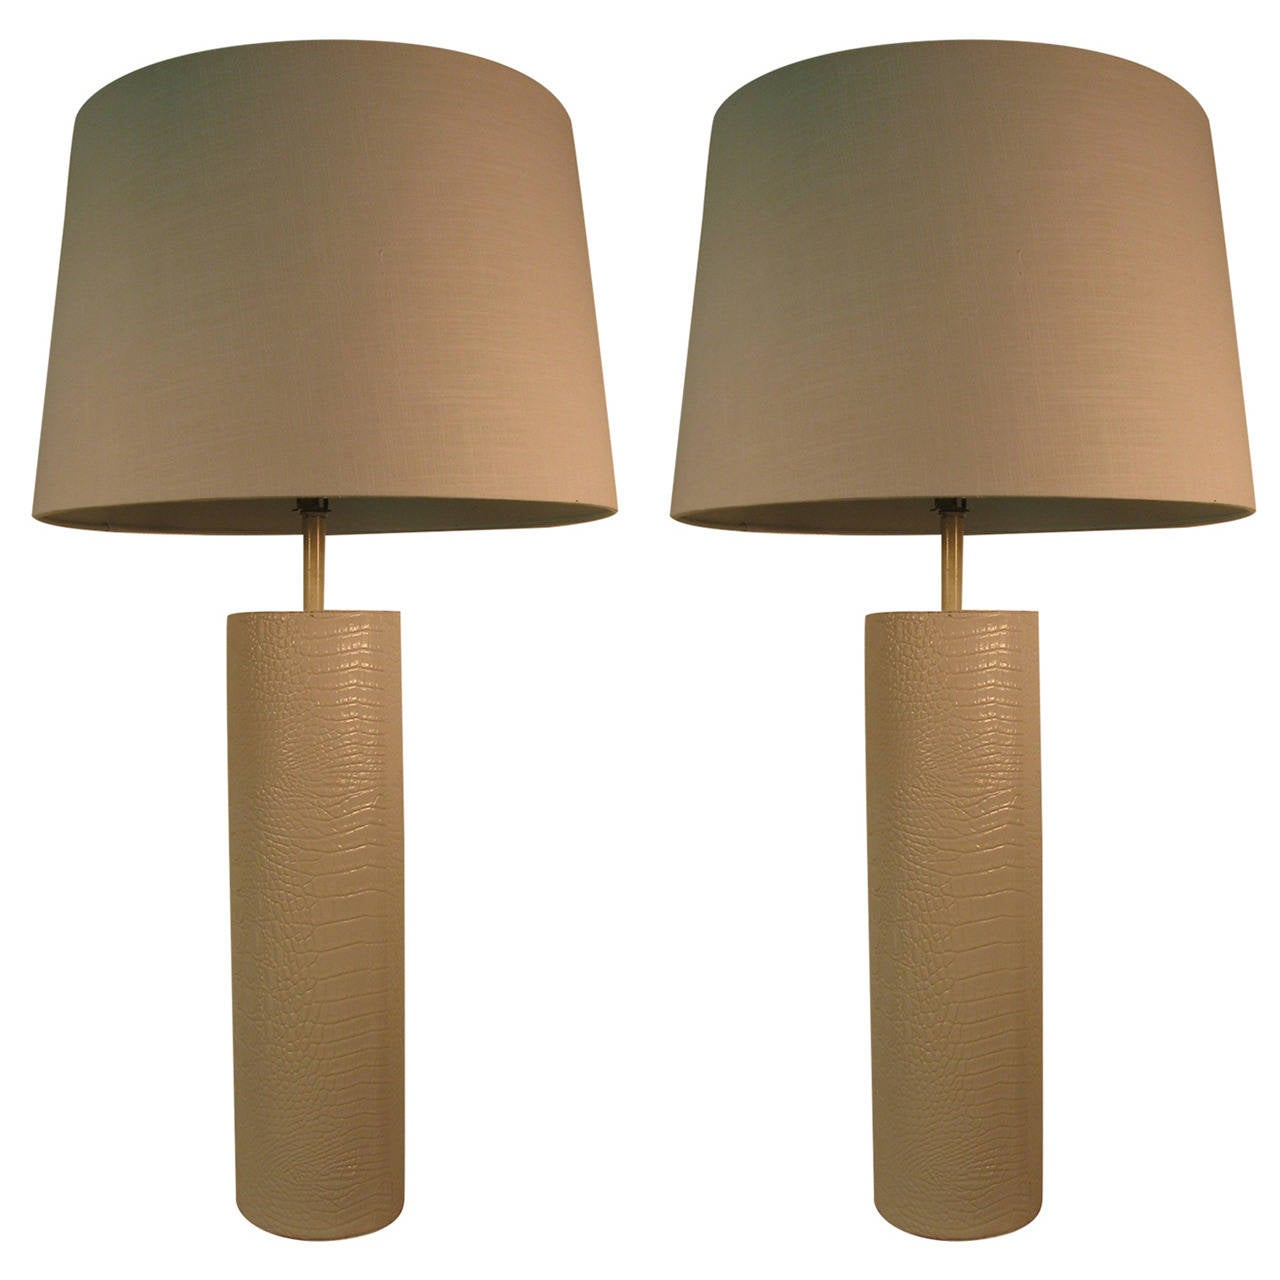 Pair of Faux Crocodile Table Lamps